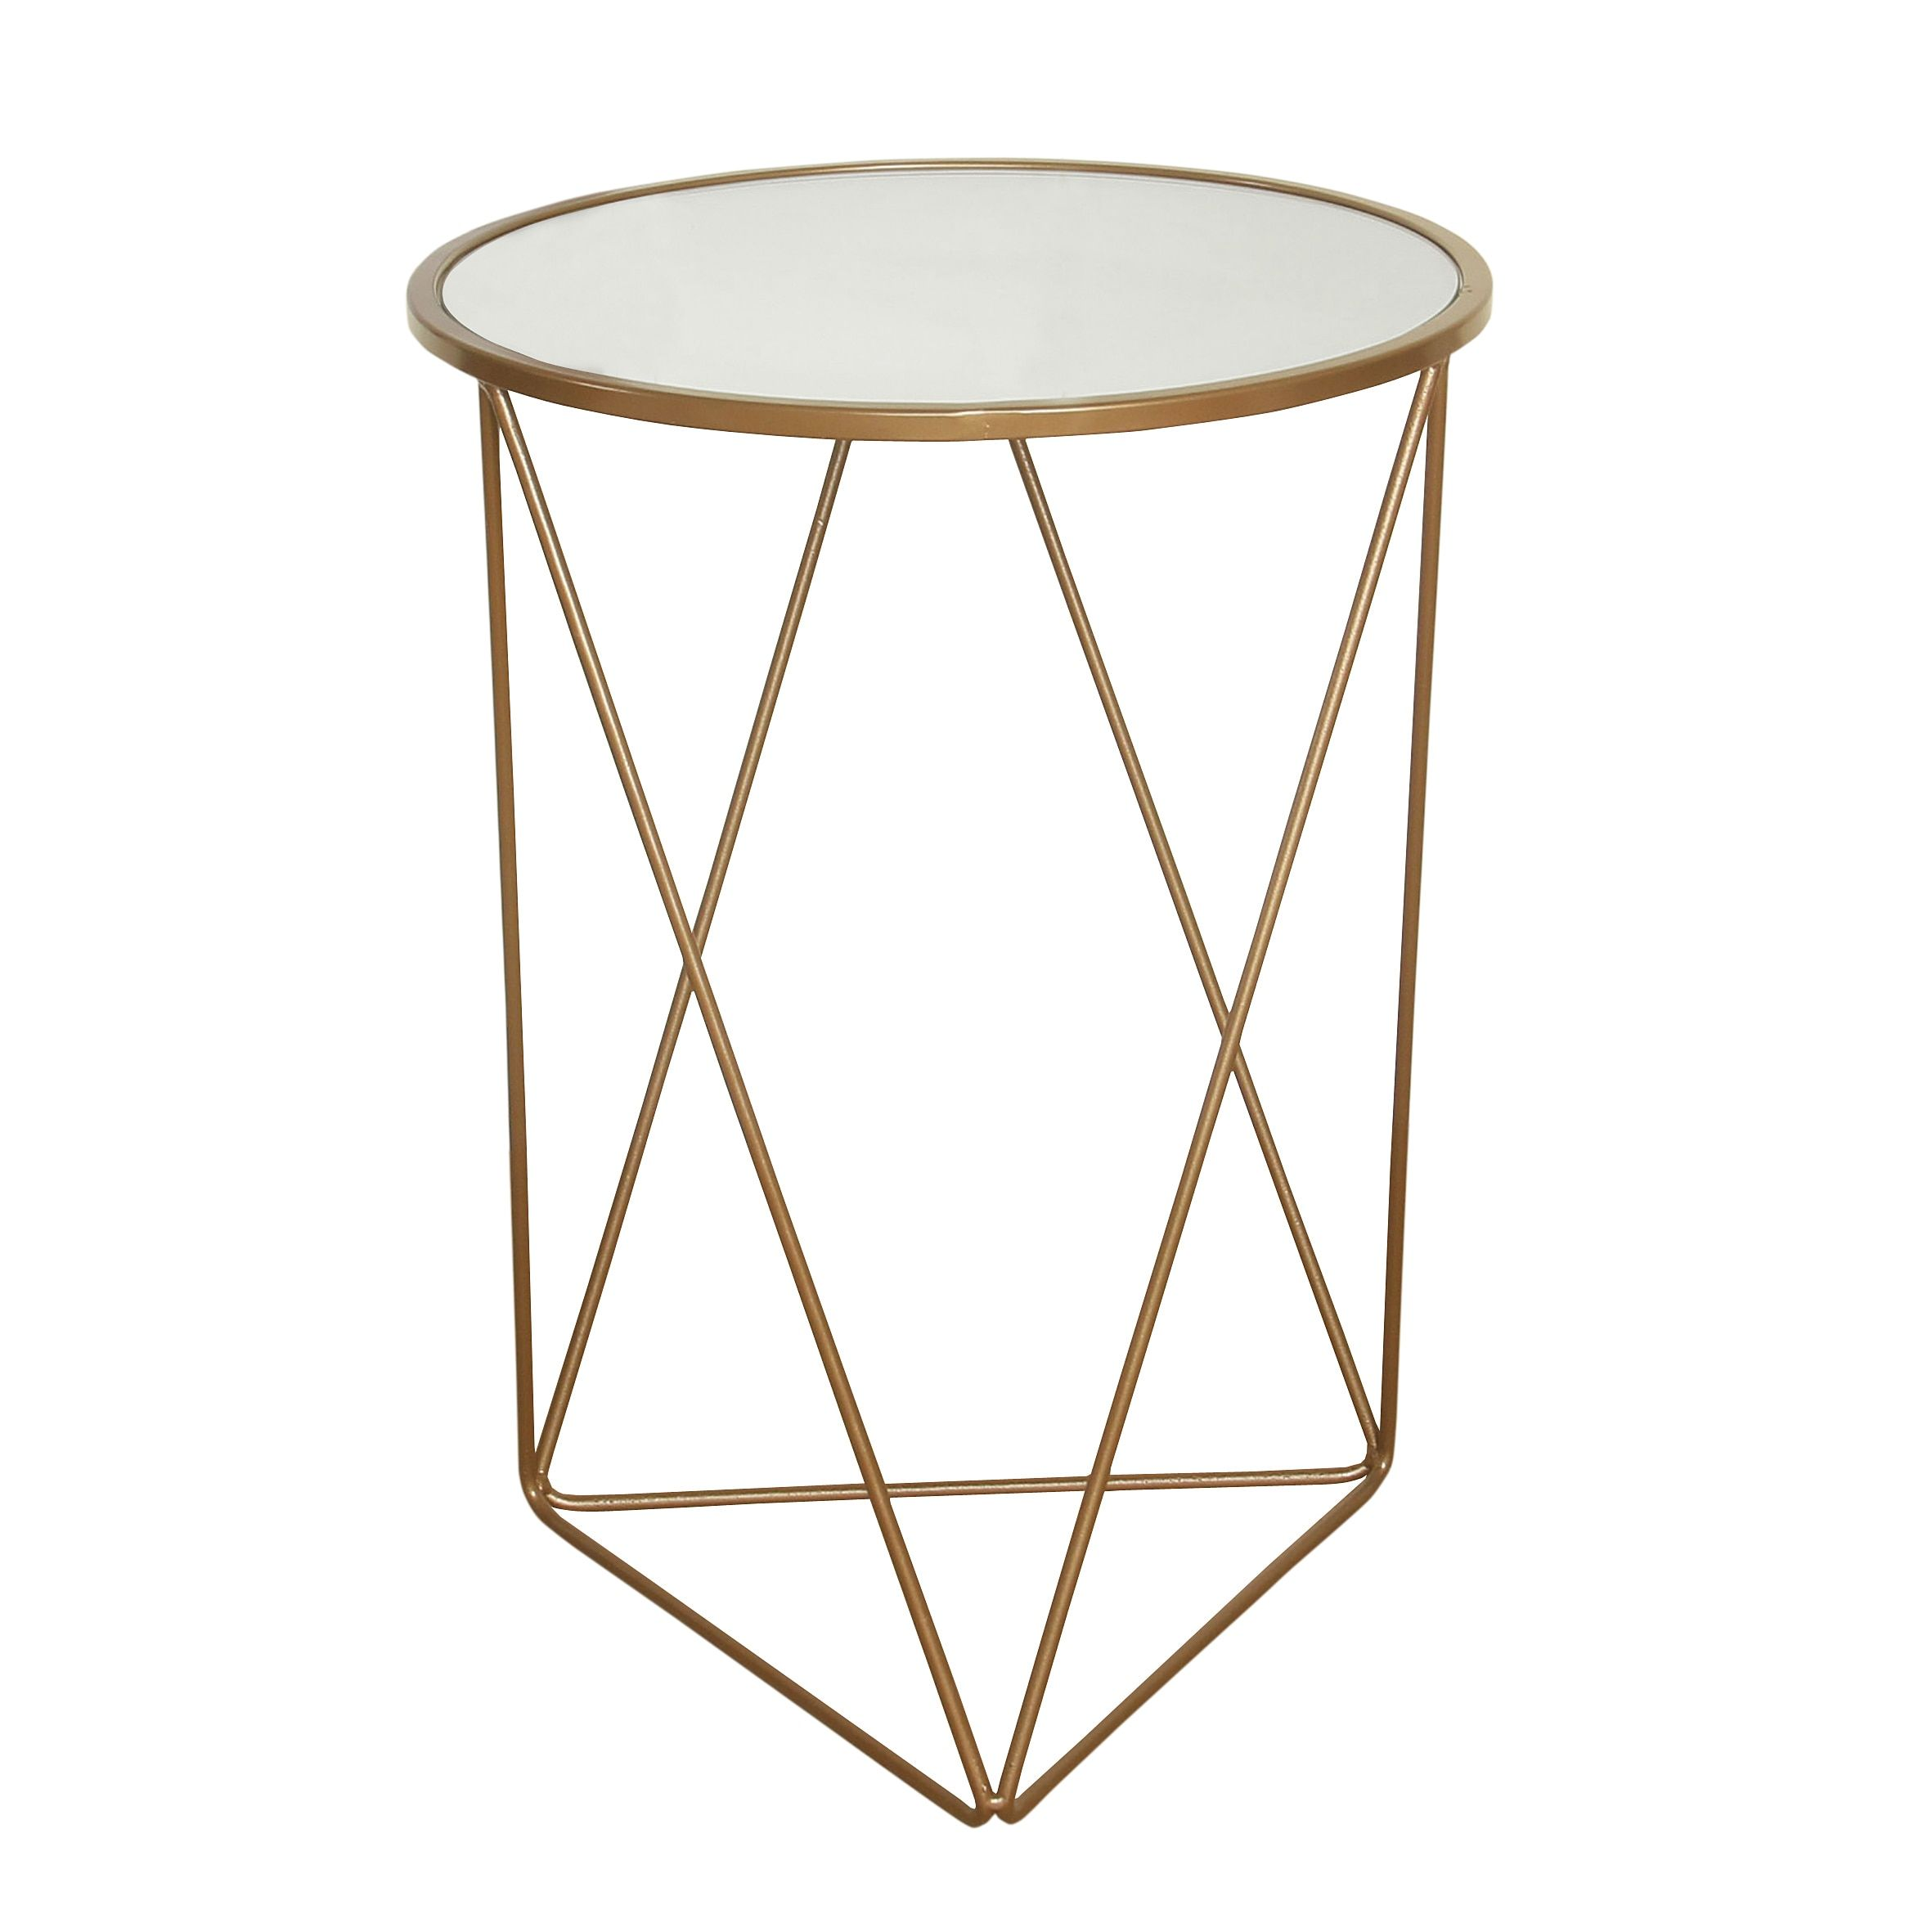 homepop metal accent table triangle gold base round glass top antique faceted with outdoor legs small couch end tables pineapple lights large cover what console brass and side